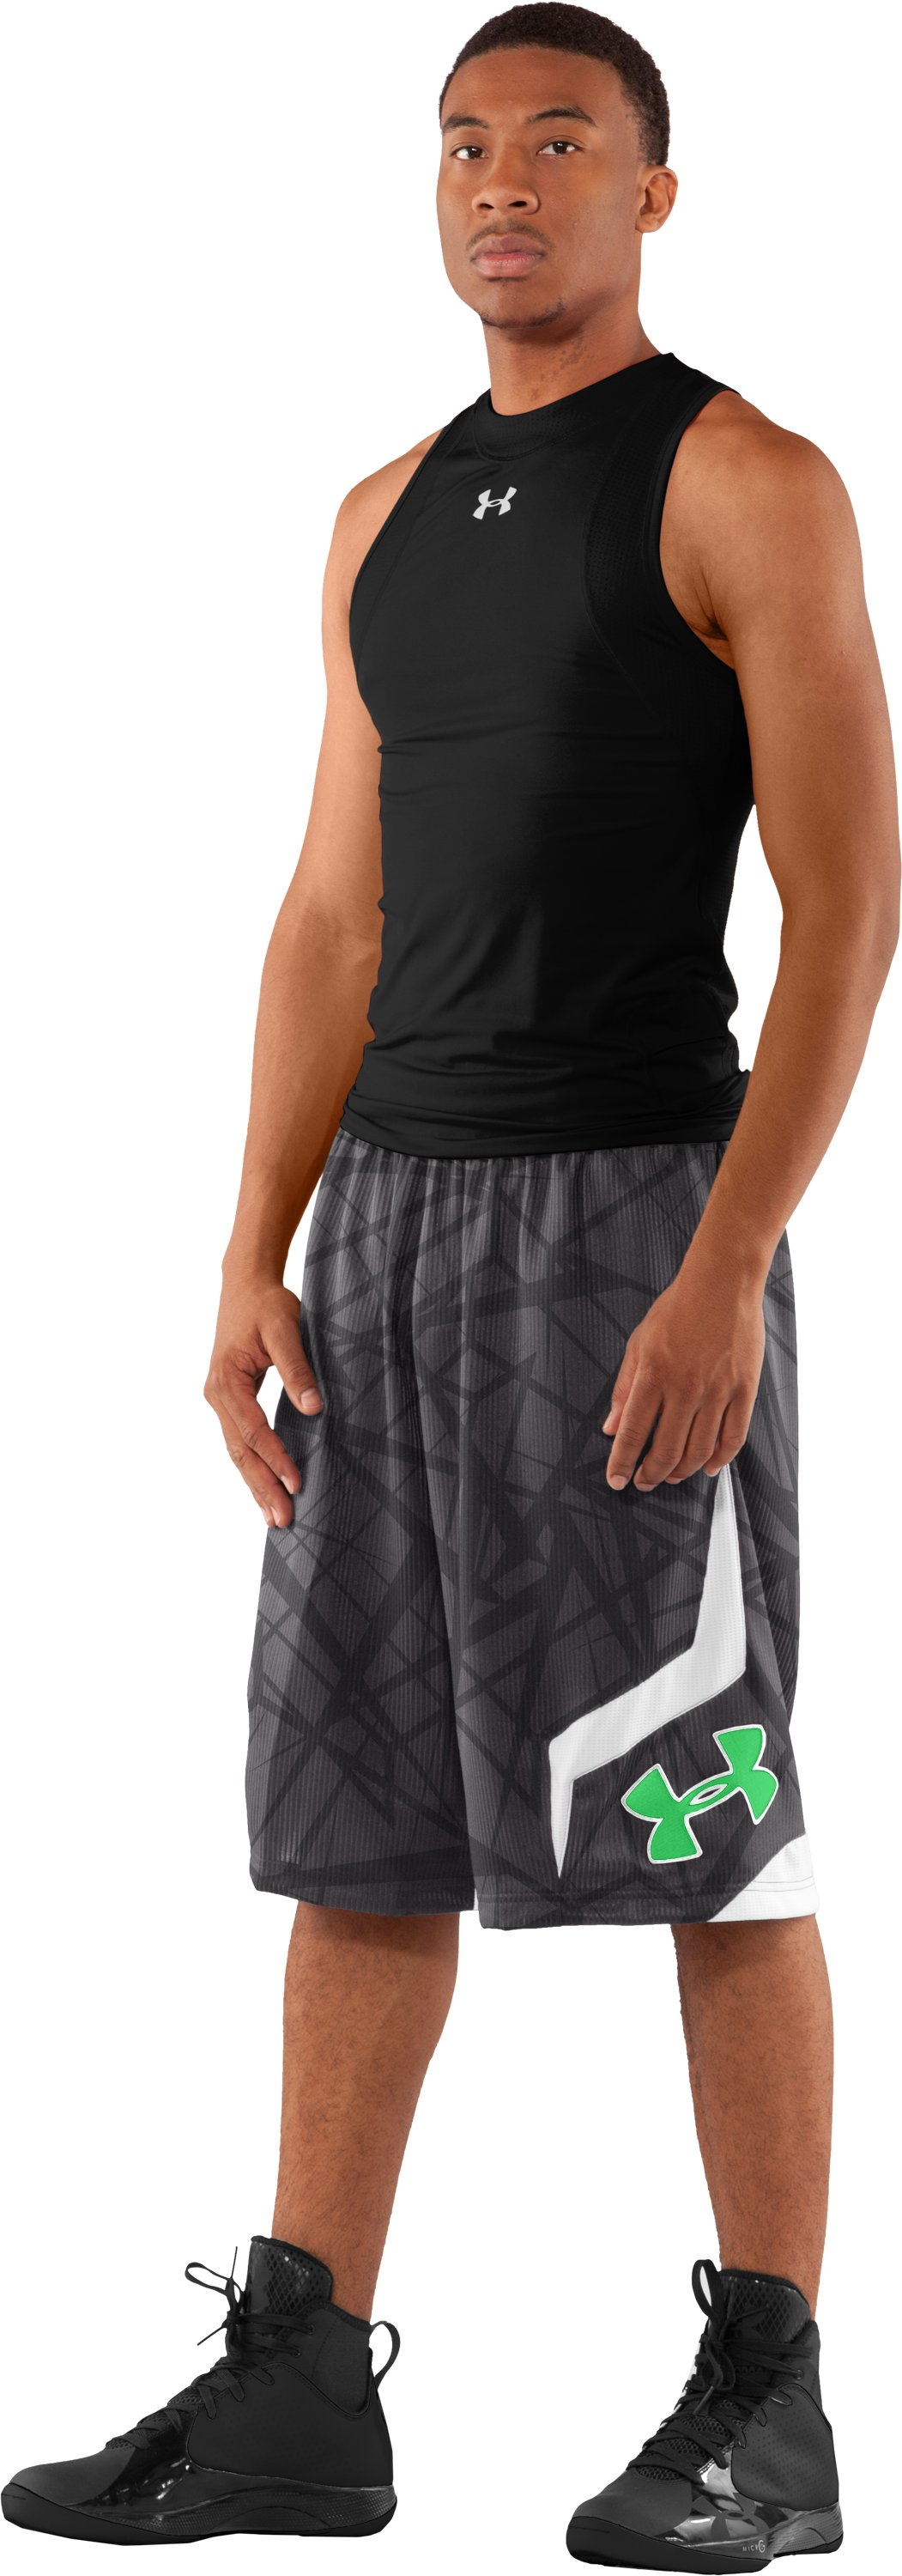 "Men's Printed UA Valkyrie 12"" Basketball Shorts, Charcoal"